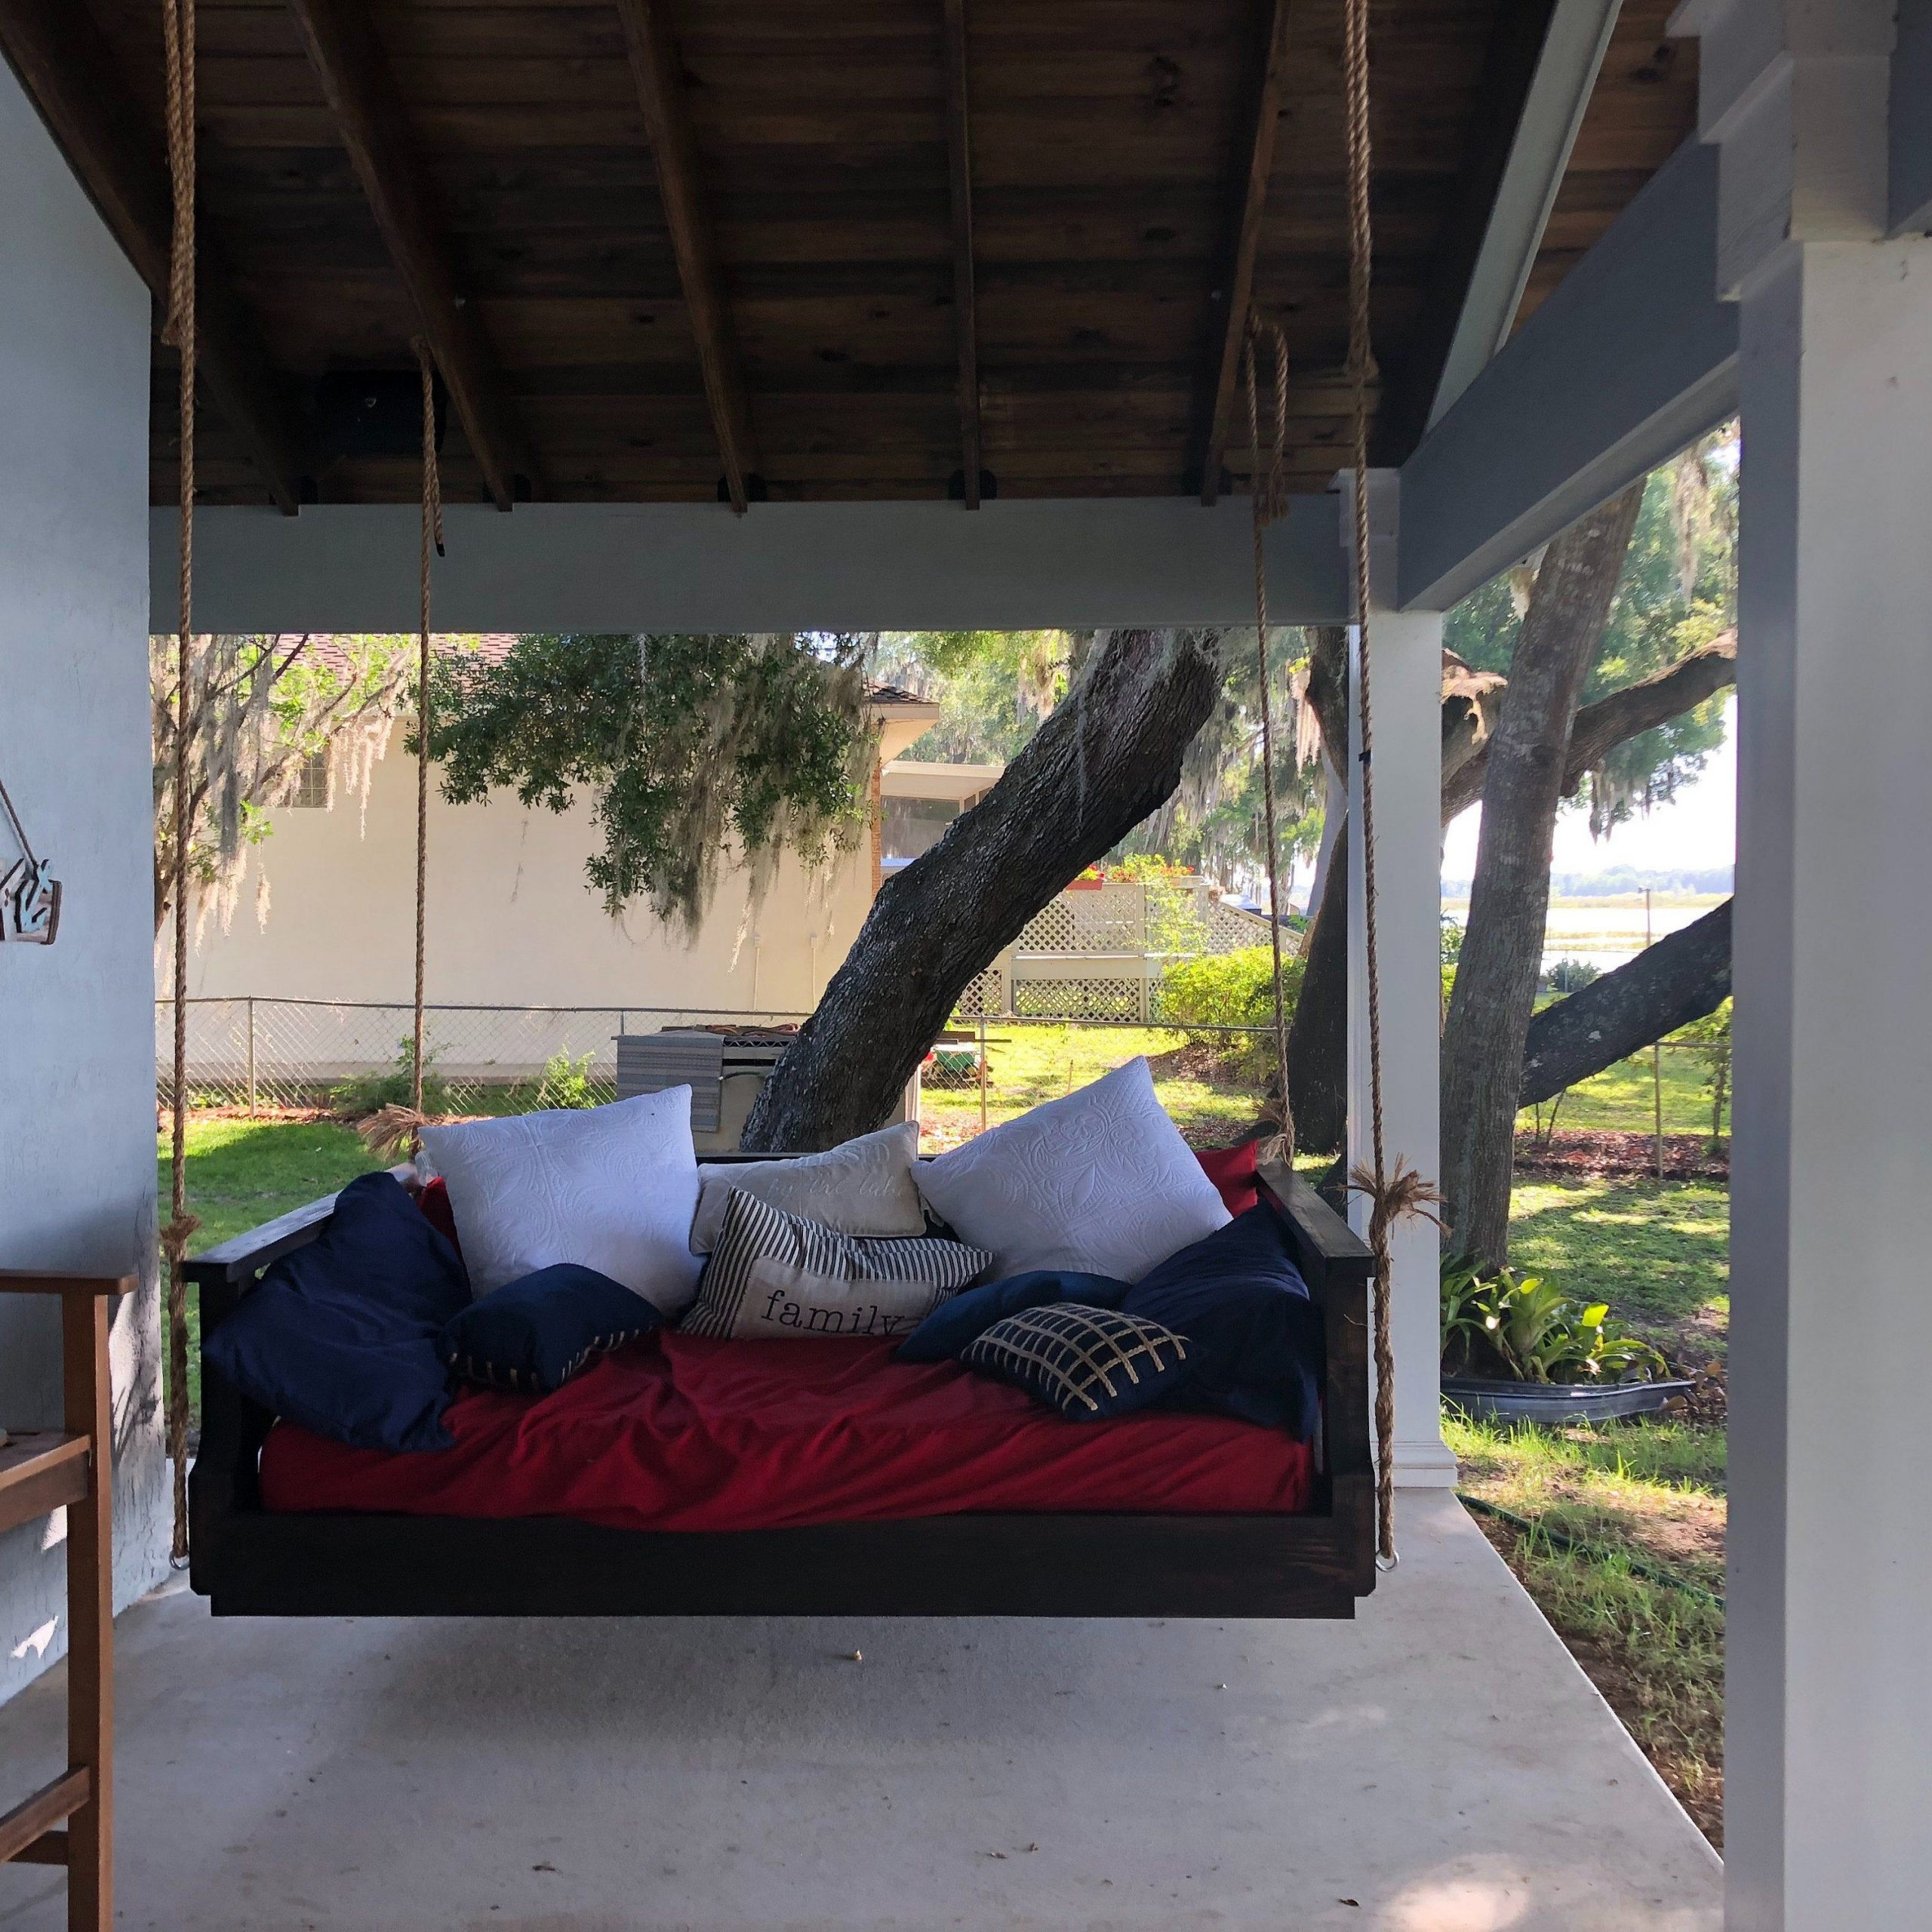 Ridgidbuilt Mission Custom Bed Swing, Daybed Swing ,pin My Within Country Style Hanging Daybed Swings (View 5 of 25)